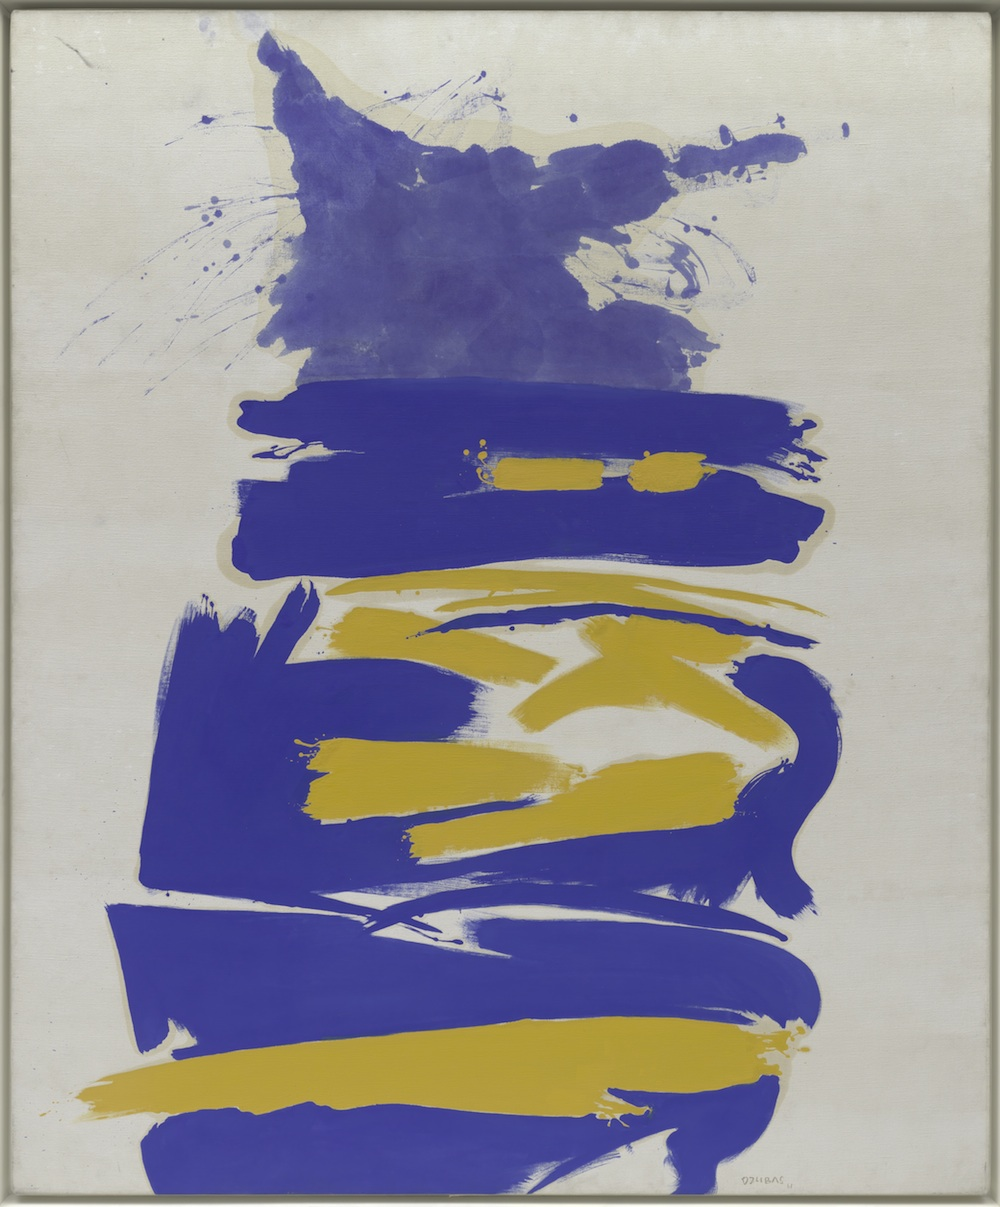 Figure 1 One Times One, 1961 oil on canvas 84 1/8 x 69 ½ in (213.7 x 176.5 cm) Private Collection since 2015 Formerly, Solomon R. Guggenheim Museum, New York 61.1592